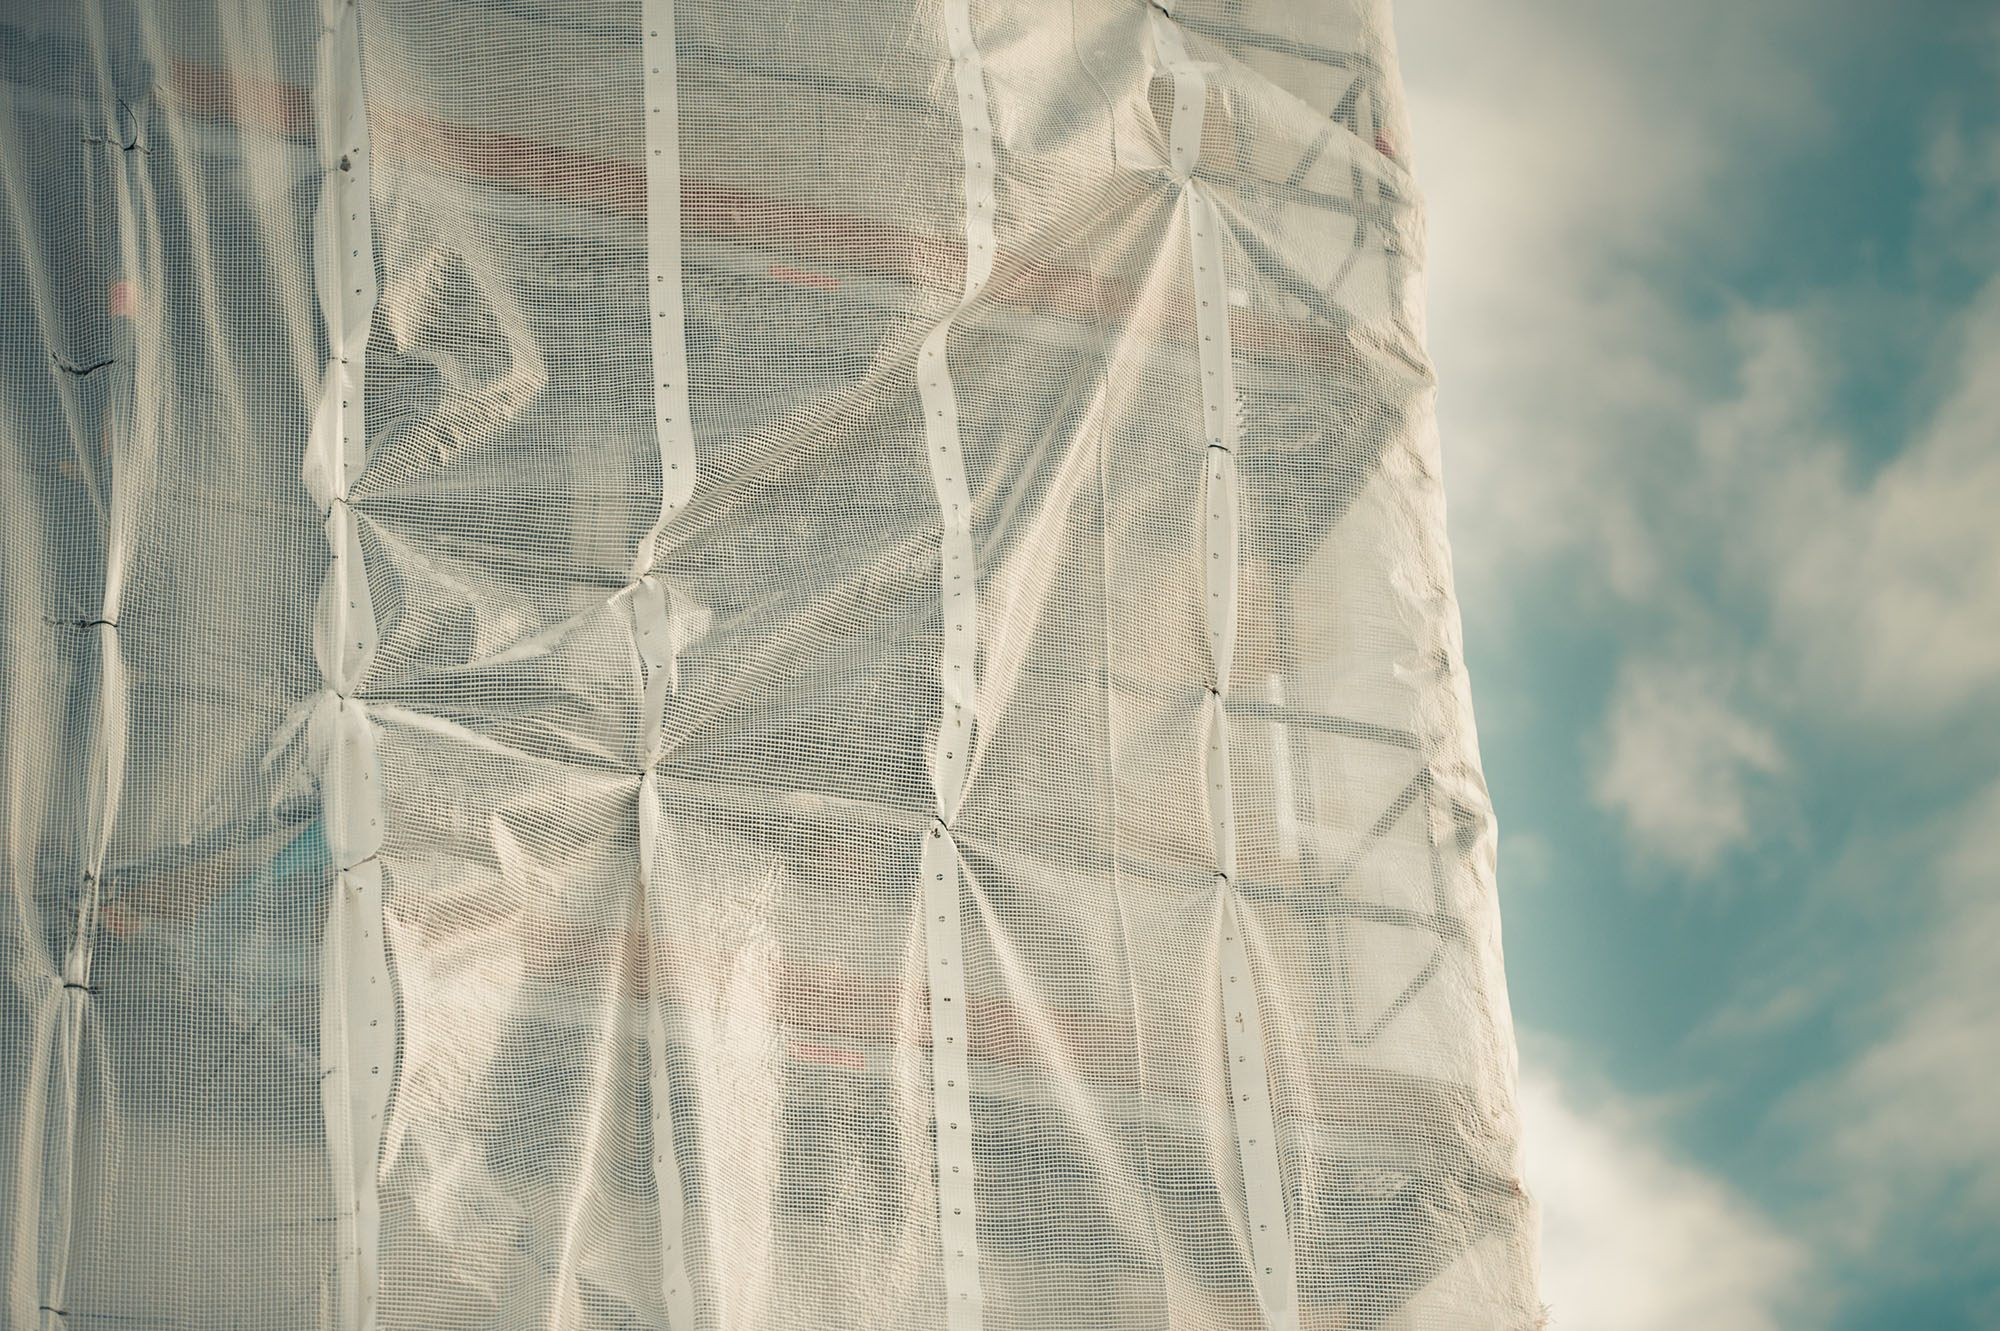 Wrapping around a building being repaired (I. Grasbergs/Shutterstock)